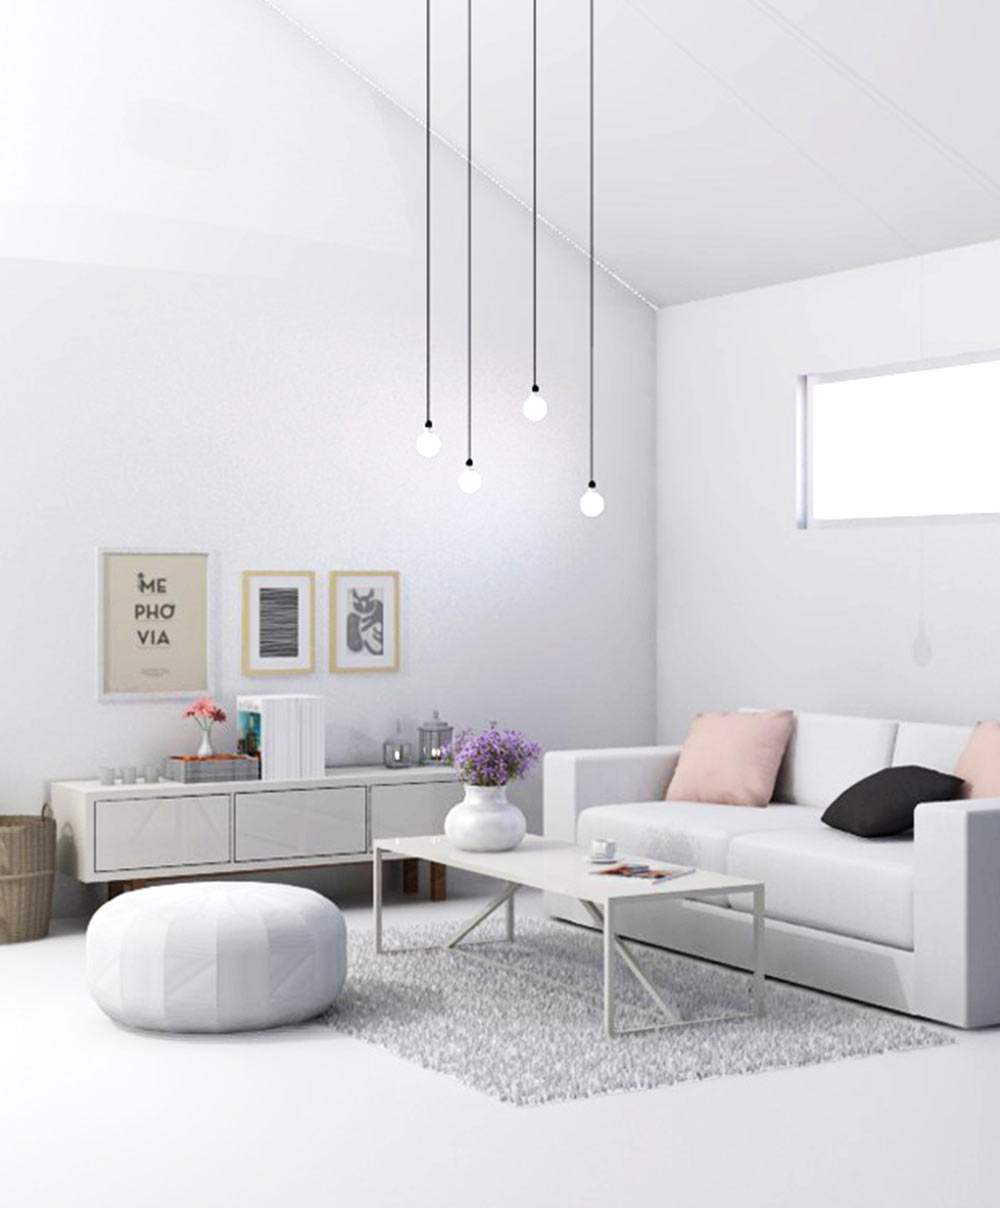 Wit interieur: Scandinavisch interieurontwerp